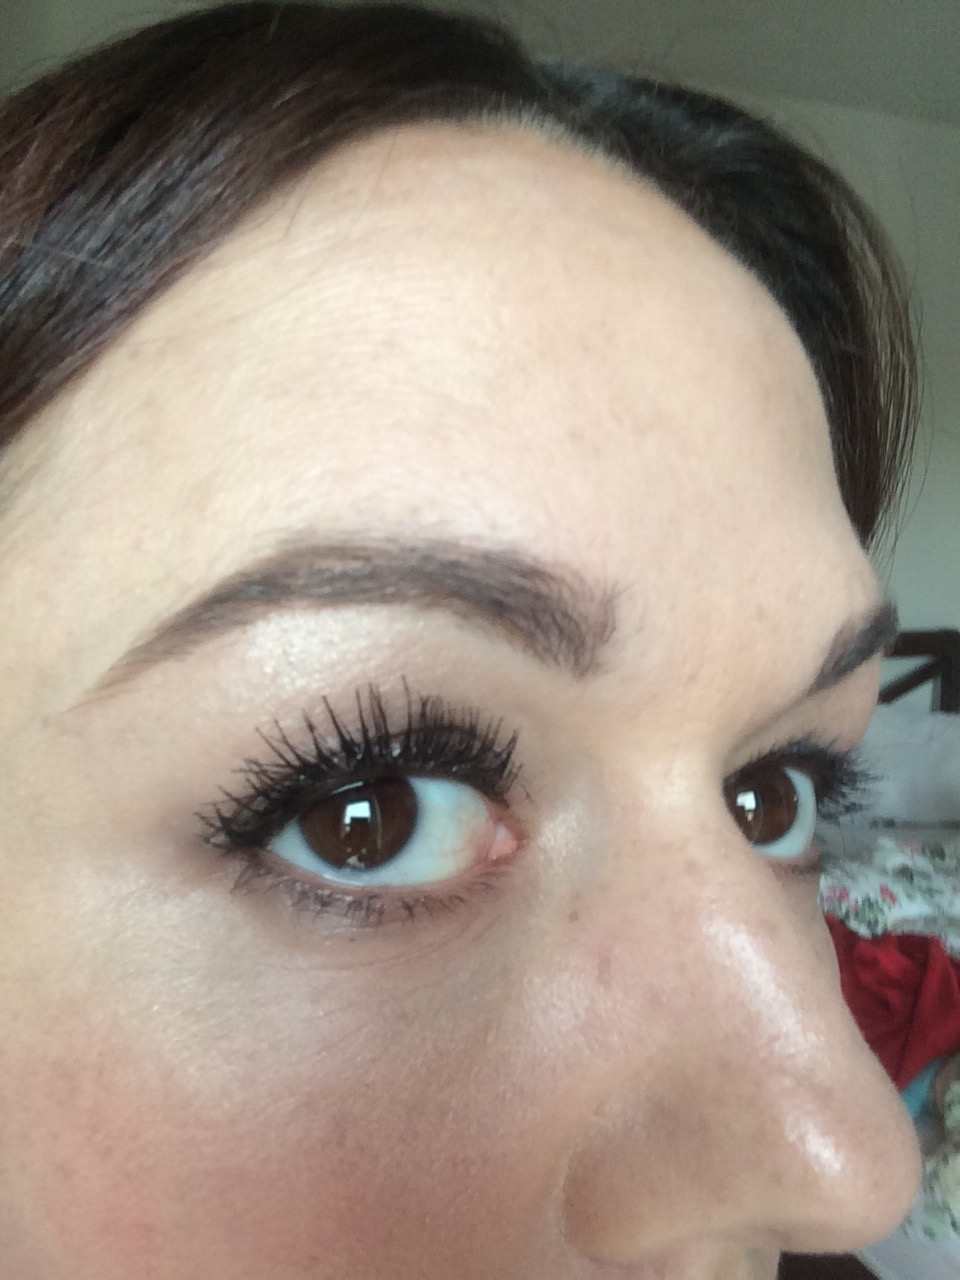 how to grow back overplucked 90s eyebrows- slightly thicker brows  and filled in with makeup